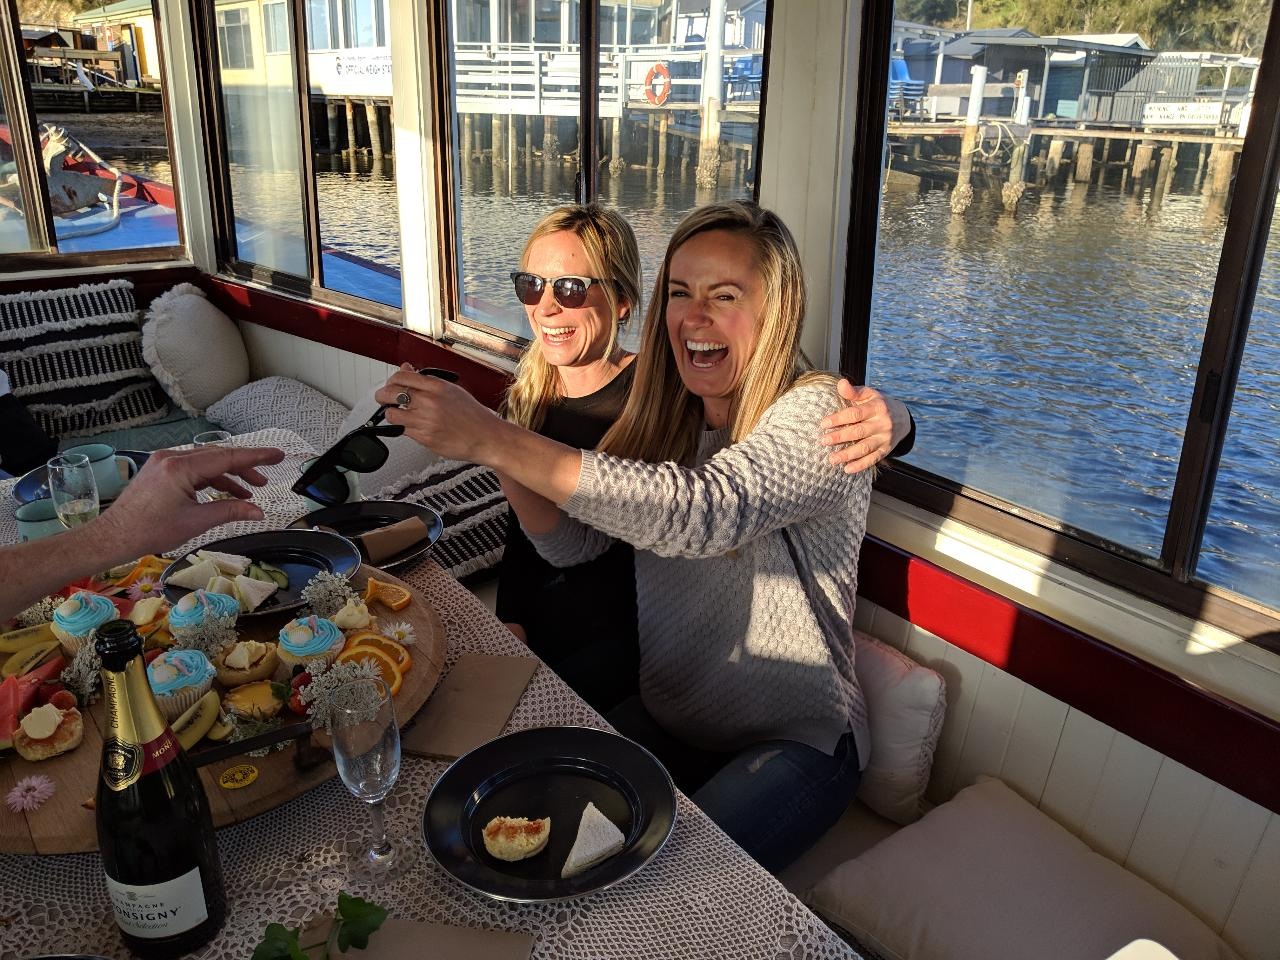 GIRLS DAY OUT - E-Bike & Yoga Session, Wagonga Inlet private Oyster Cruise & Dinner at The Dromedary Hotel in Tilba for 6 people - Save $$$